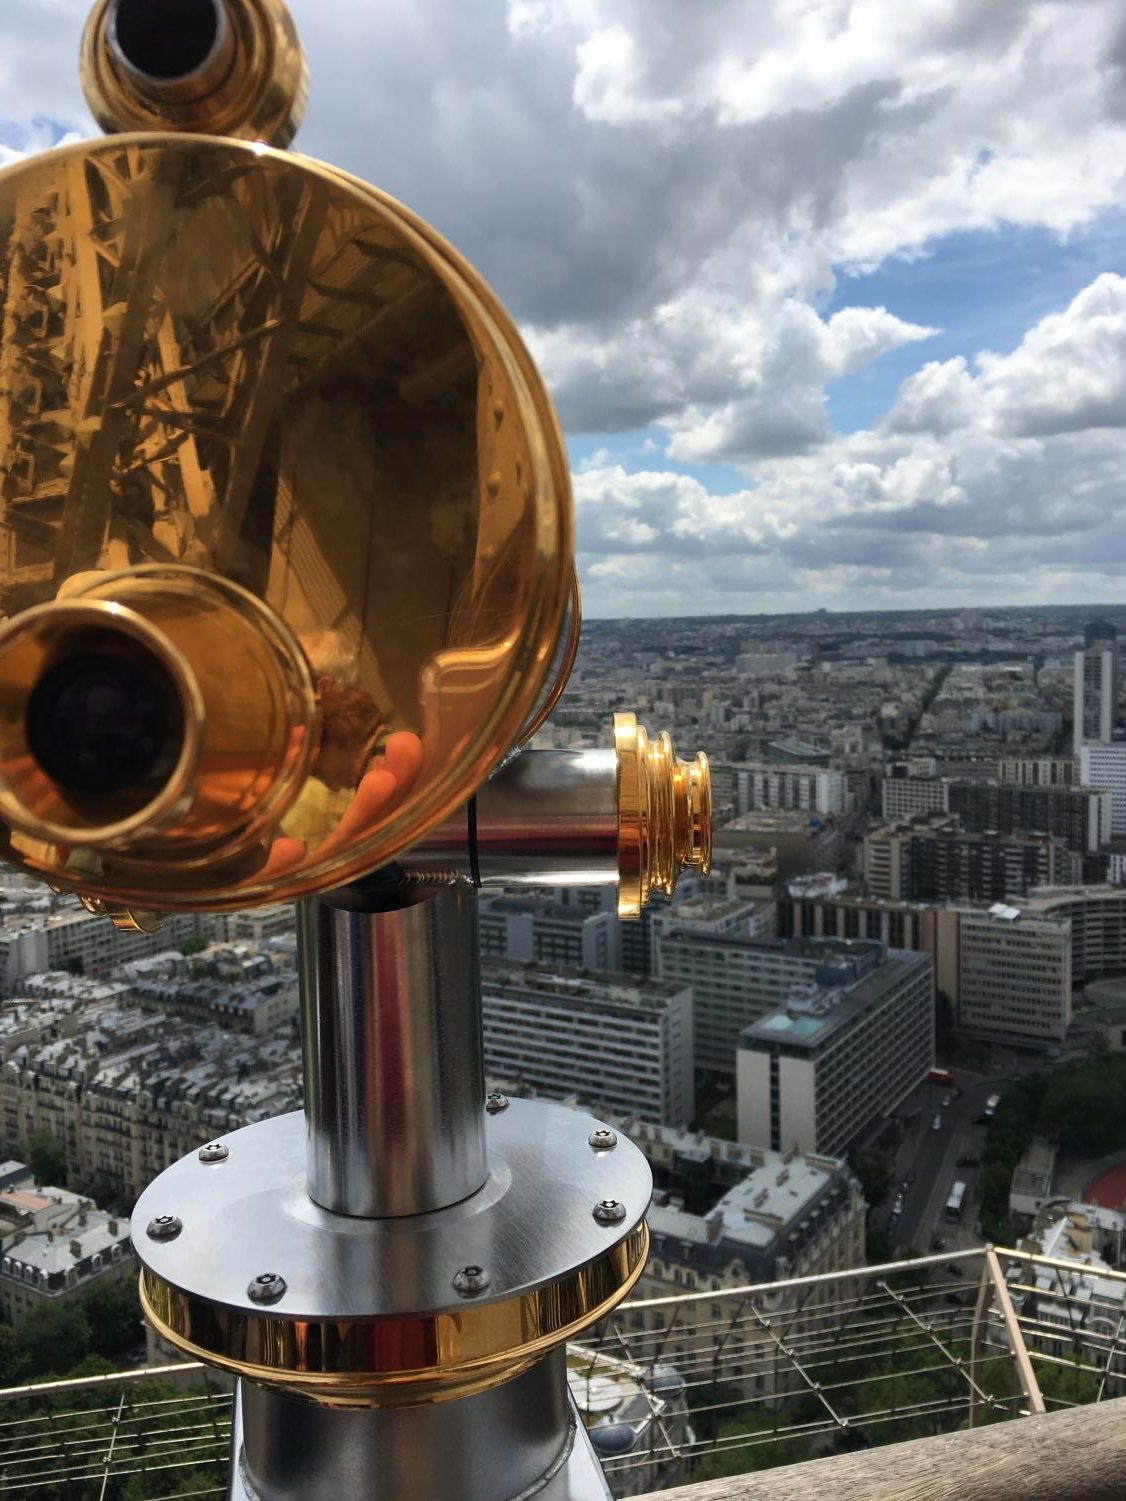 Using+the+telescopes+stationed+at+the+different+levels%2C+tourists+can+use+the+elevated+sightlines+to+get+a+closer+look+at+the+different+streets+of+Paris.+